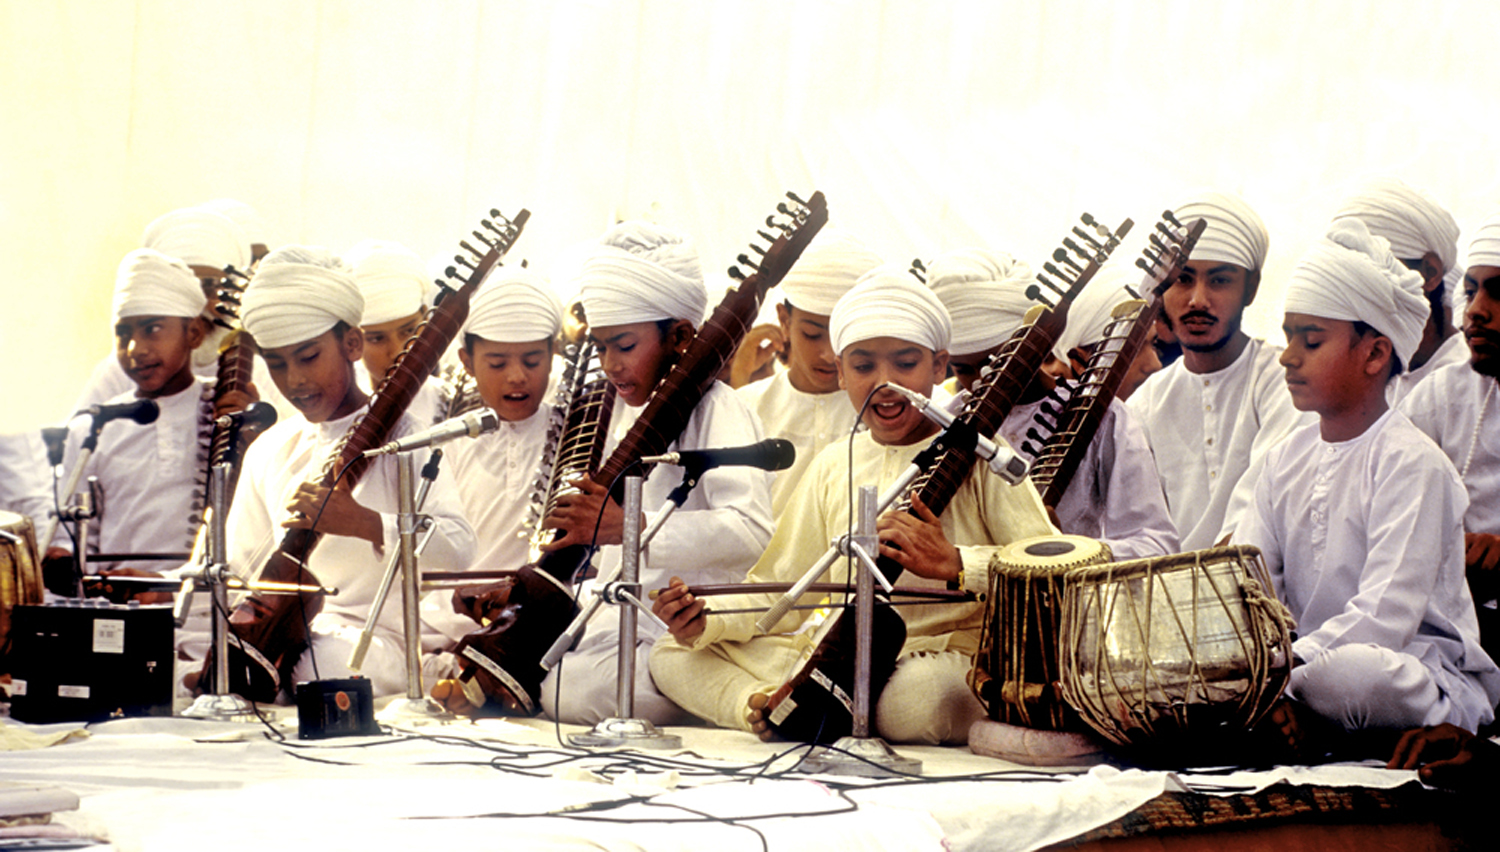 Children performing on stage, most of them play the dilruba. Image credit: V Dikshit